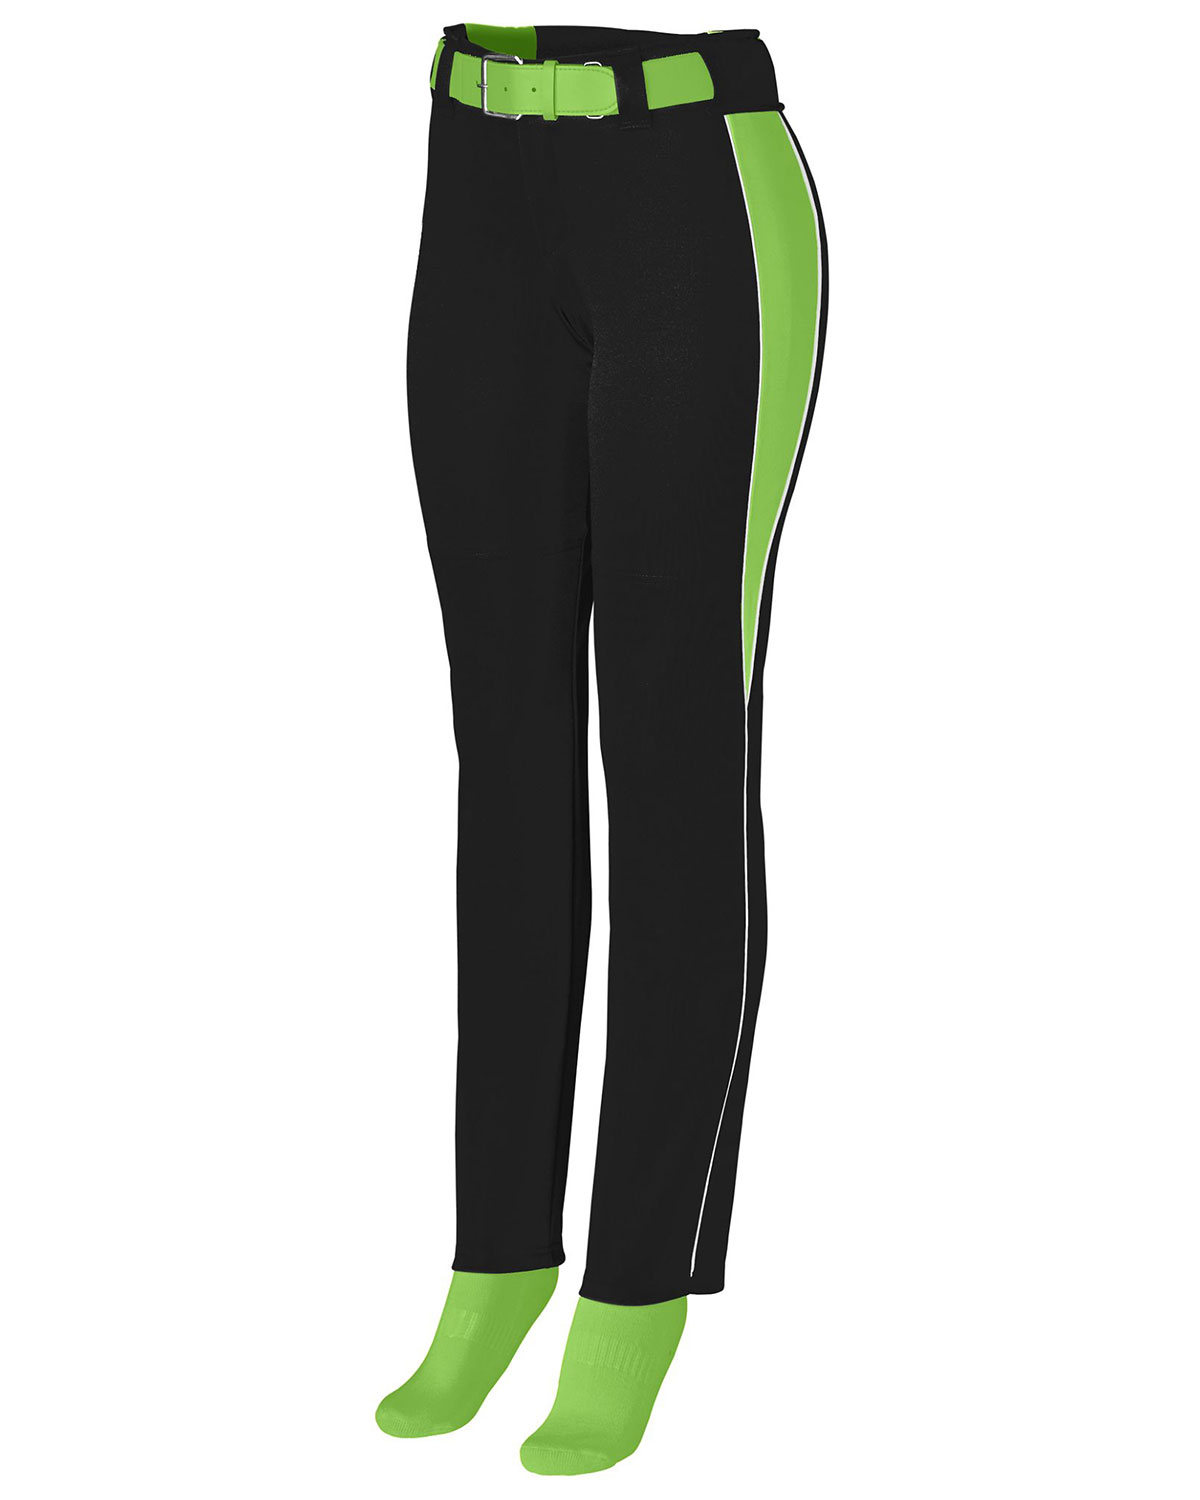 Augusta 1243 Girls Outfield Softball Pant With Drawcord at GotApparel